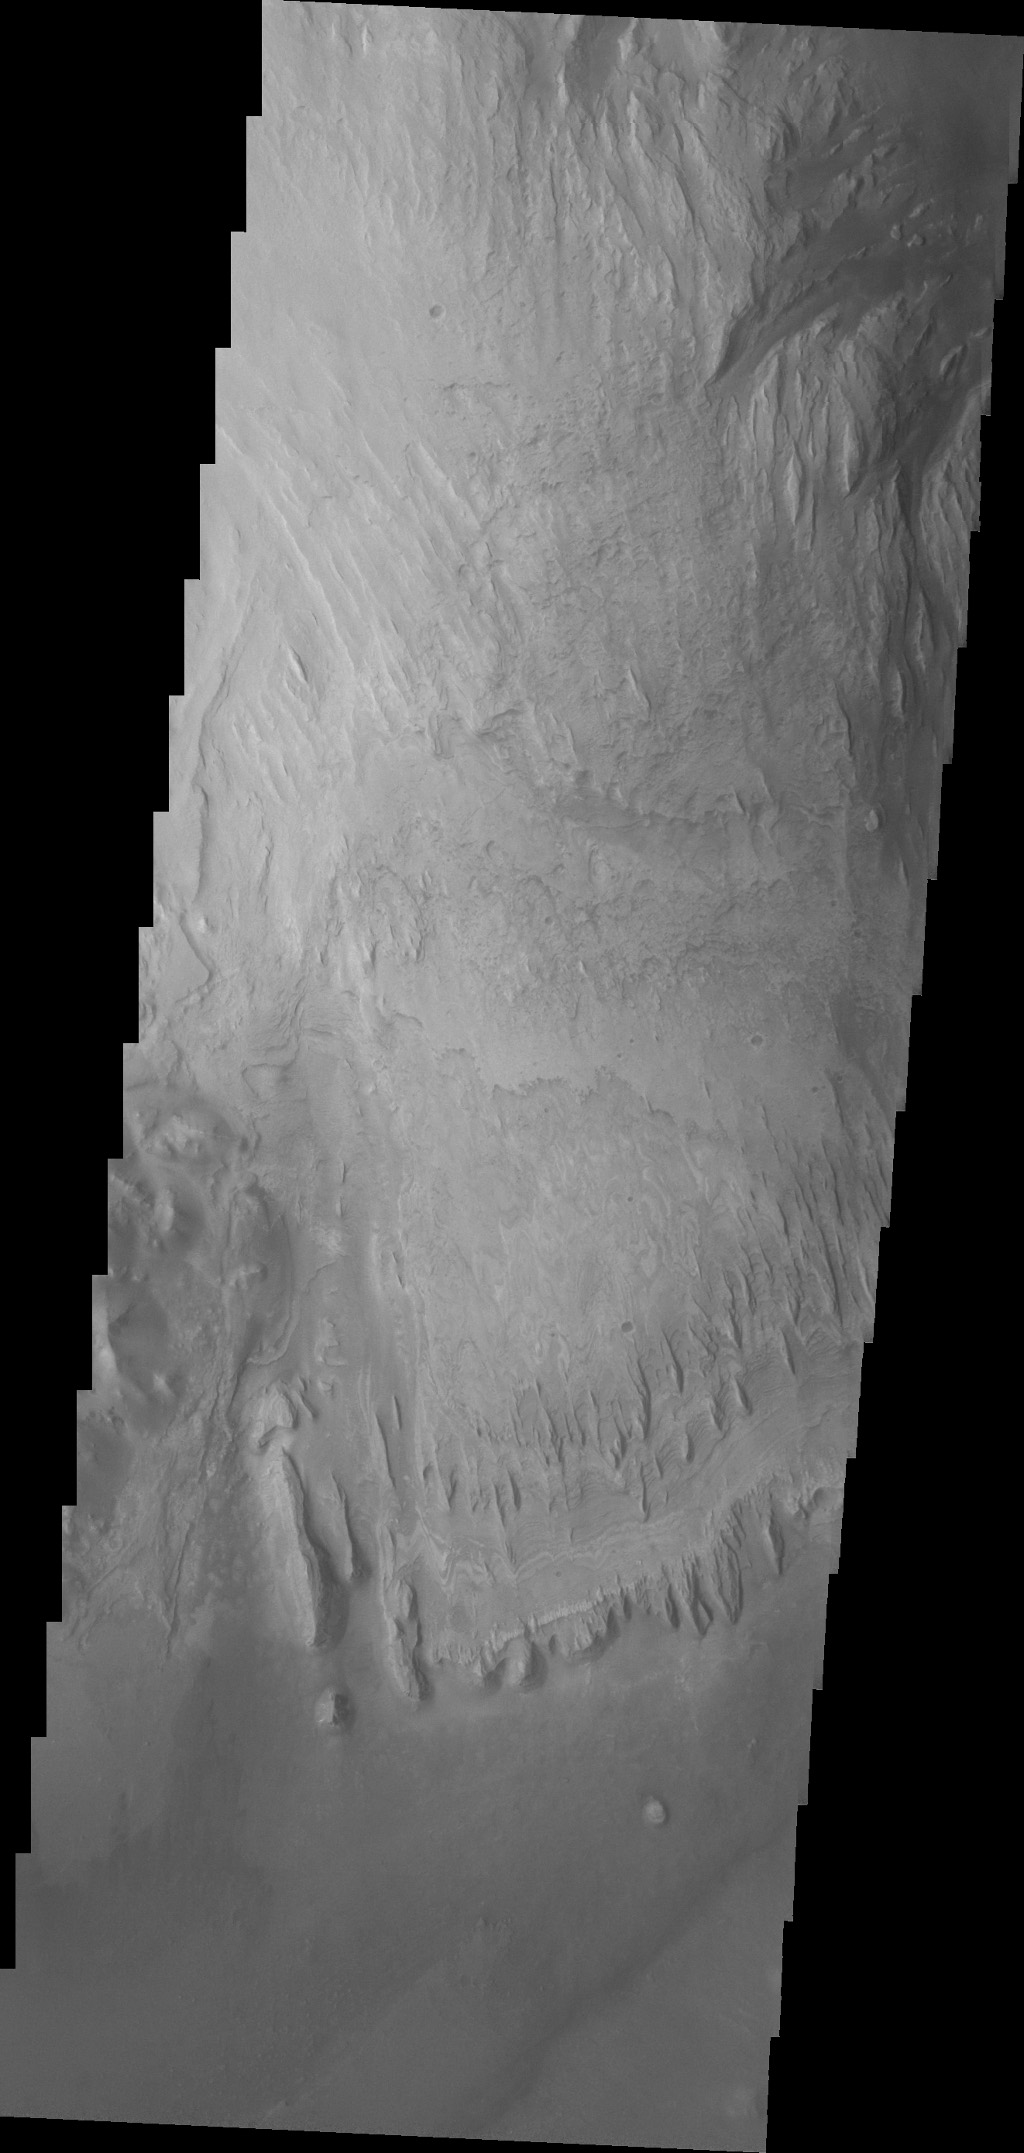 This image captured by NASA's 2001 Mars Odyssey spacecraft shows more of the weathering of the eastern side of Mt. Sharp.